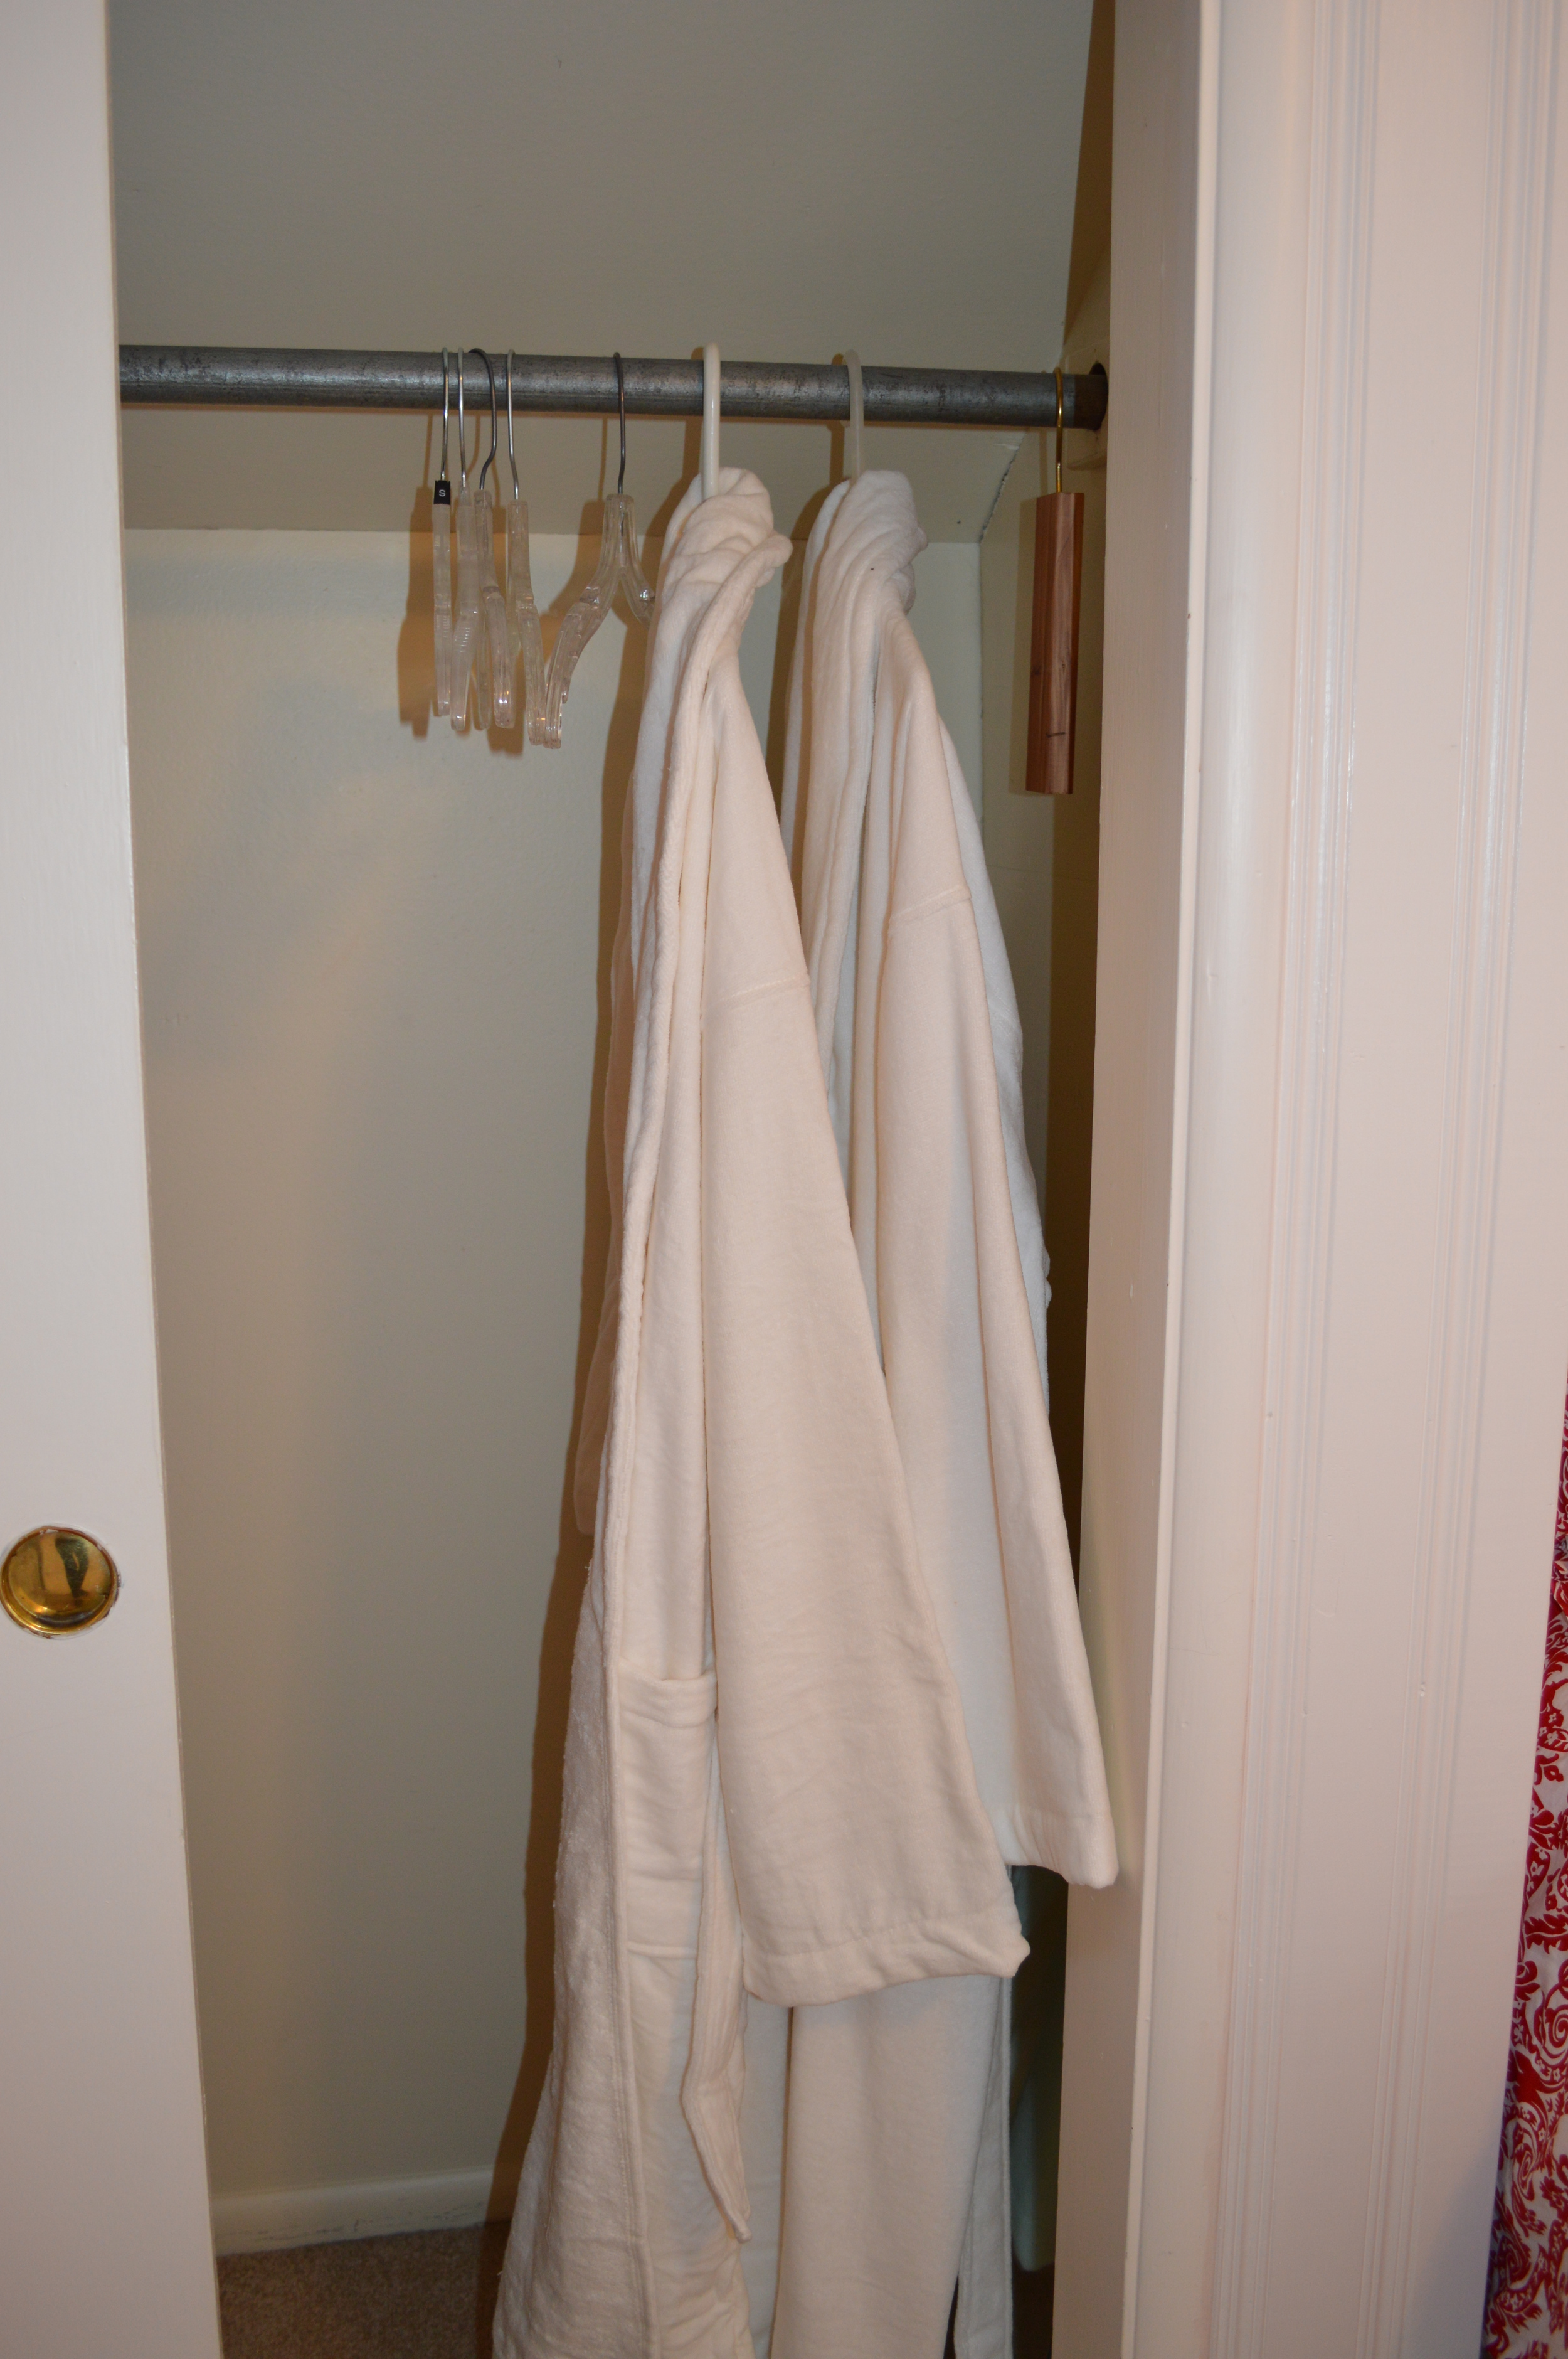 His and Hers bathrobes from IKEA and extra hangers...